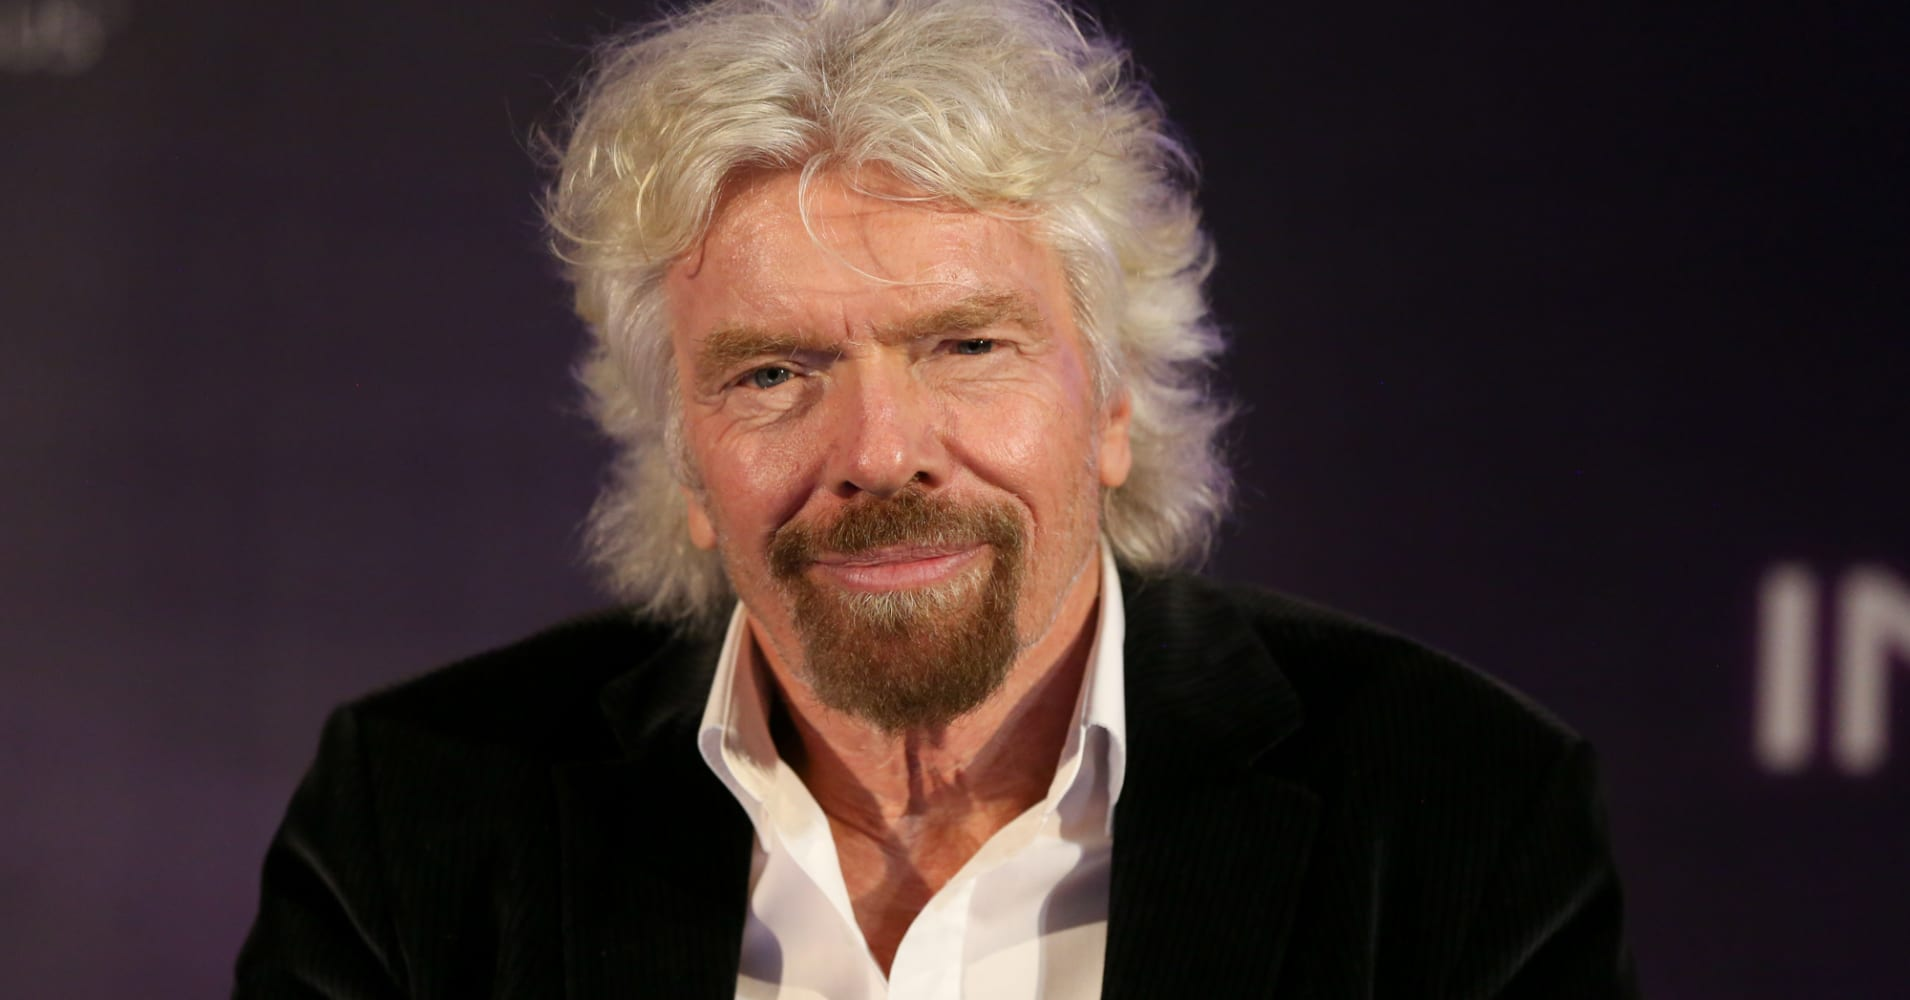 Richard Branson says he looks for these 2 things in employees